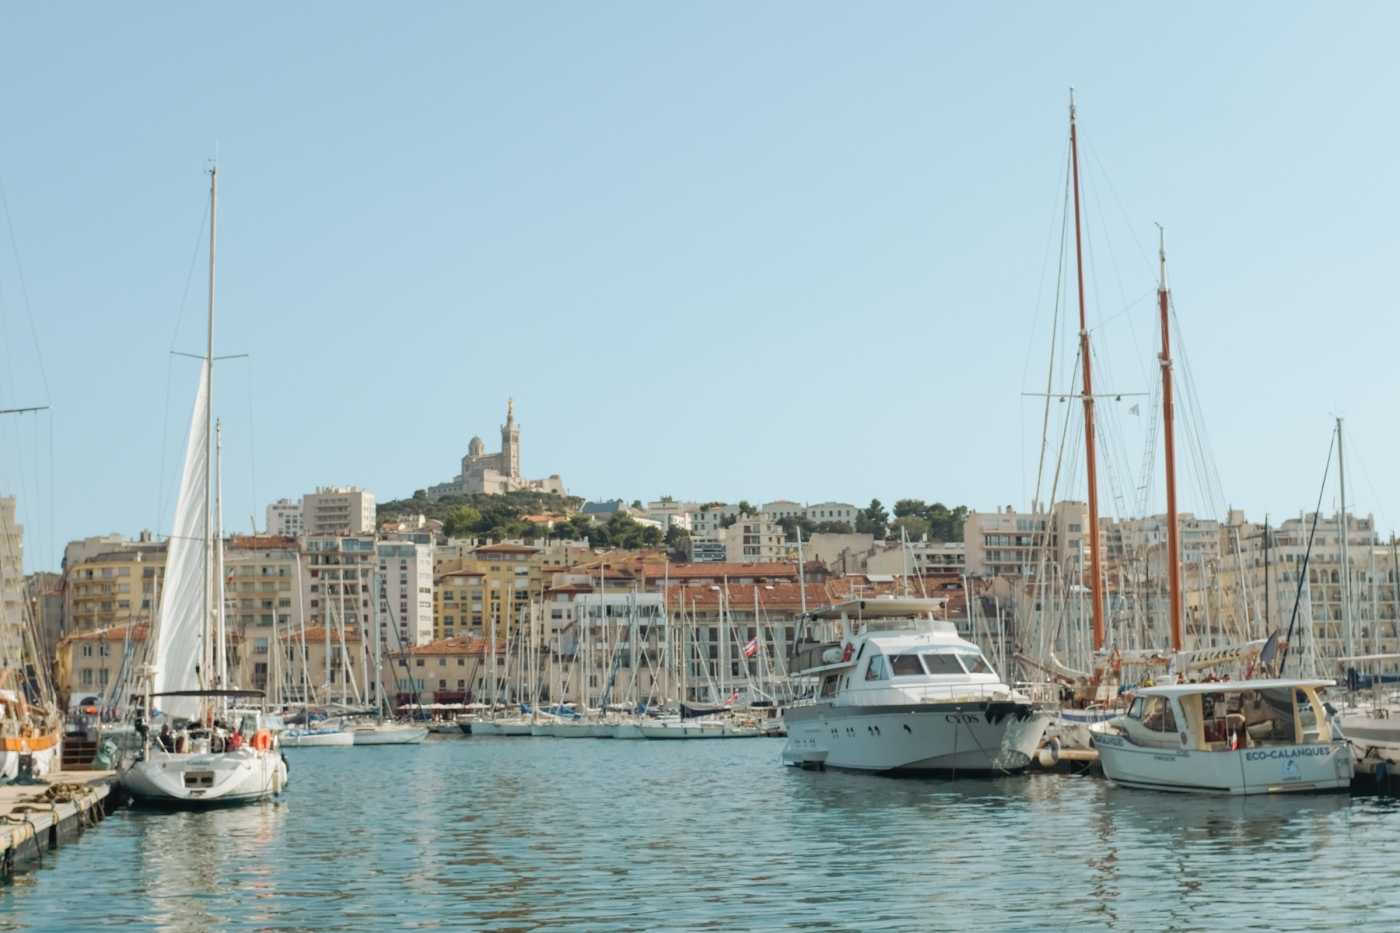 European harbor with a basilica atop a green hill in the distance